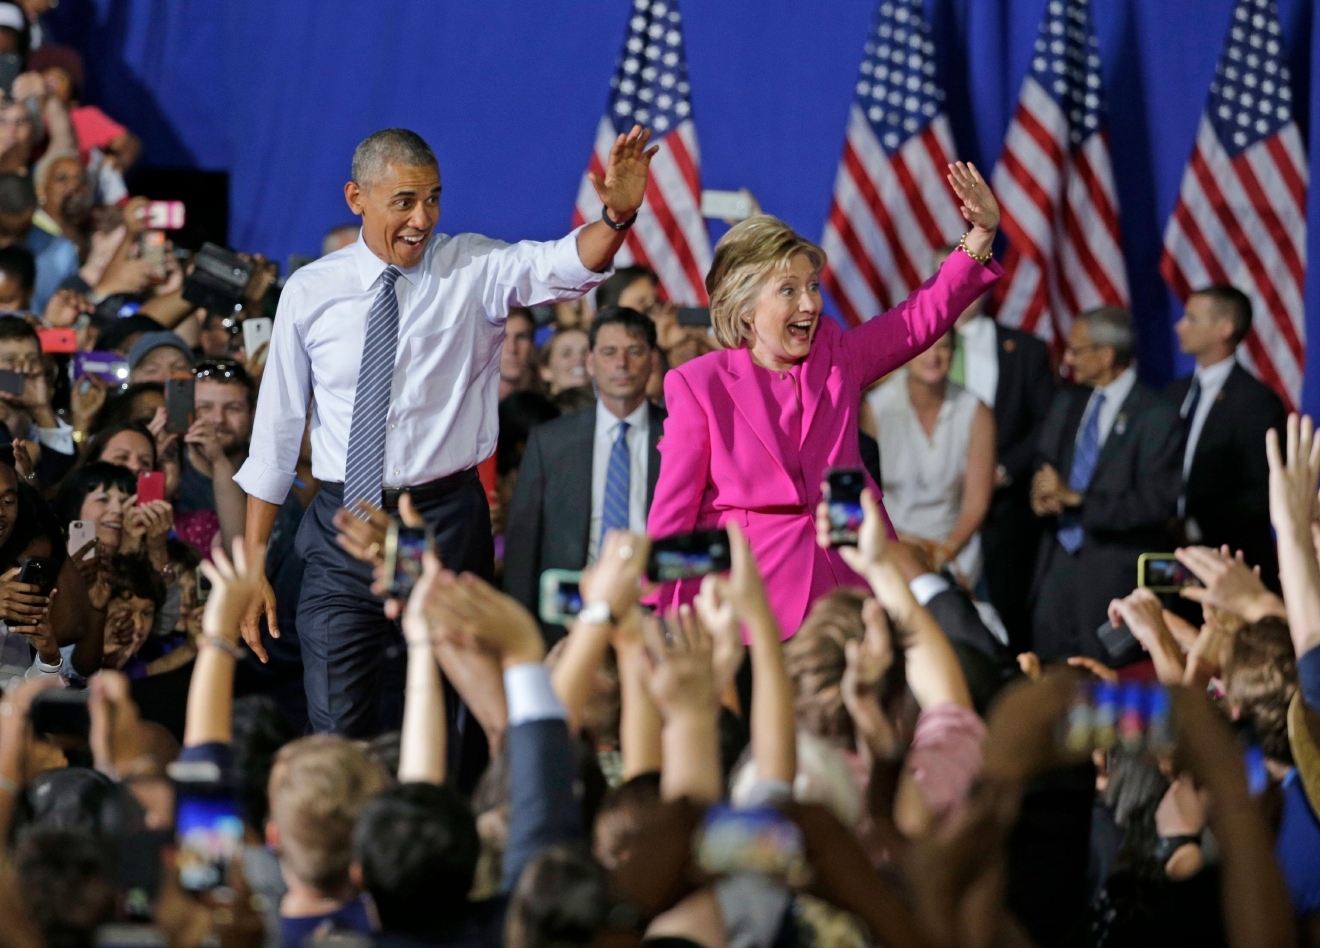 President Barack Obama and Democratic presidential candidate Hillary Clinton wave to the crowd during a campaign rally for Clinton in Charlotte, N.C., Tuesday, July 5, 2016. (AP Photo/Chuck Burton)